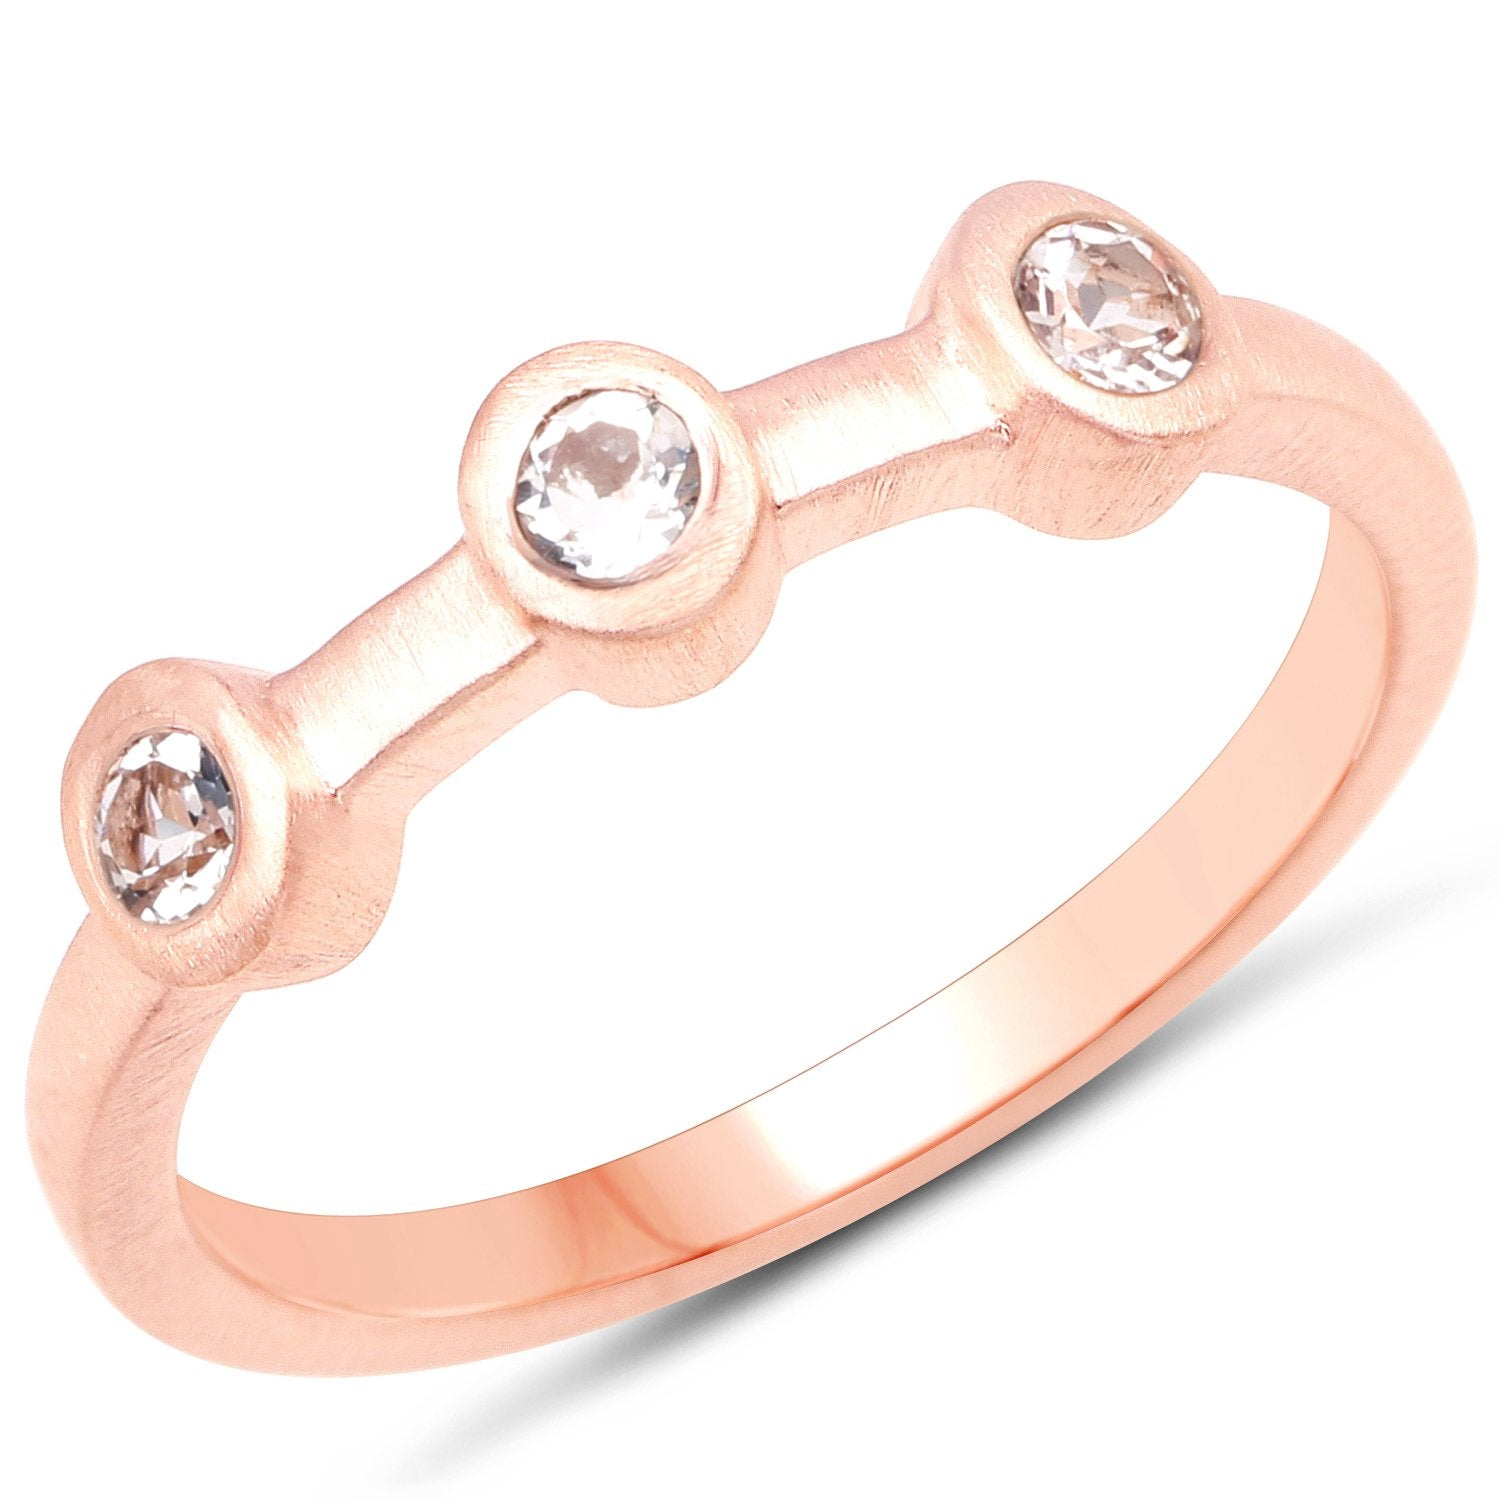 LoveHuang 0.17 Carats Genuine Morganite Three Stone Ring Solid .925 Sterling Silver With 18KT Rose Gold Plating, Matte Finish